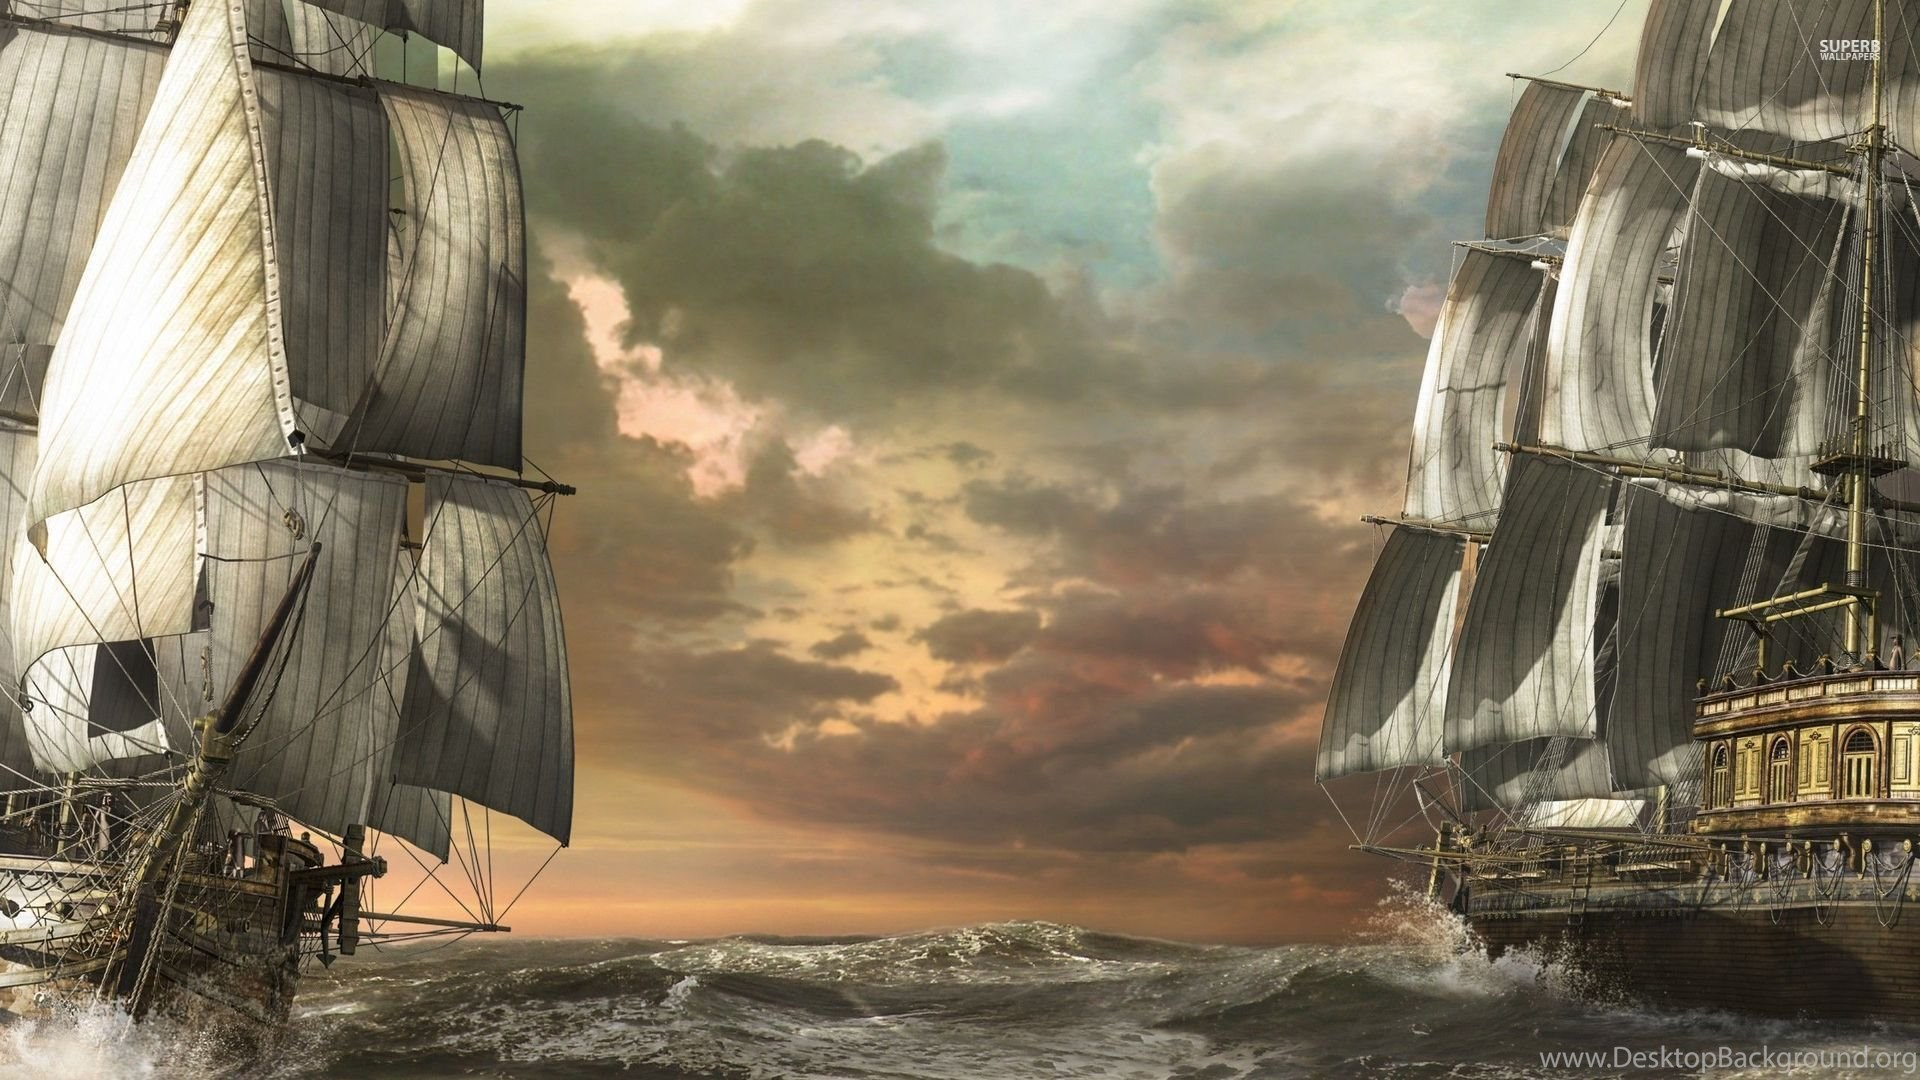 Top Pirate Ship Wallpapers 1920x1080 Images For Pinterest Desktop